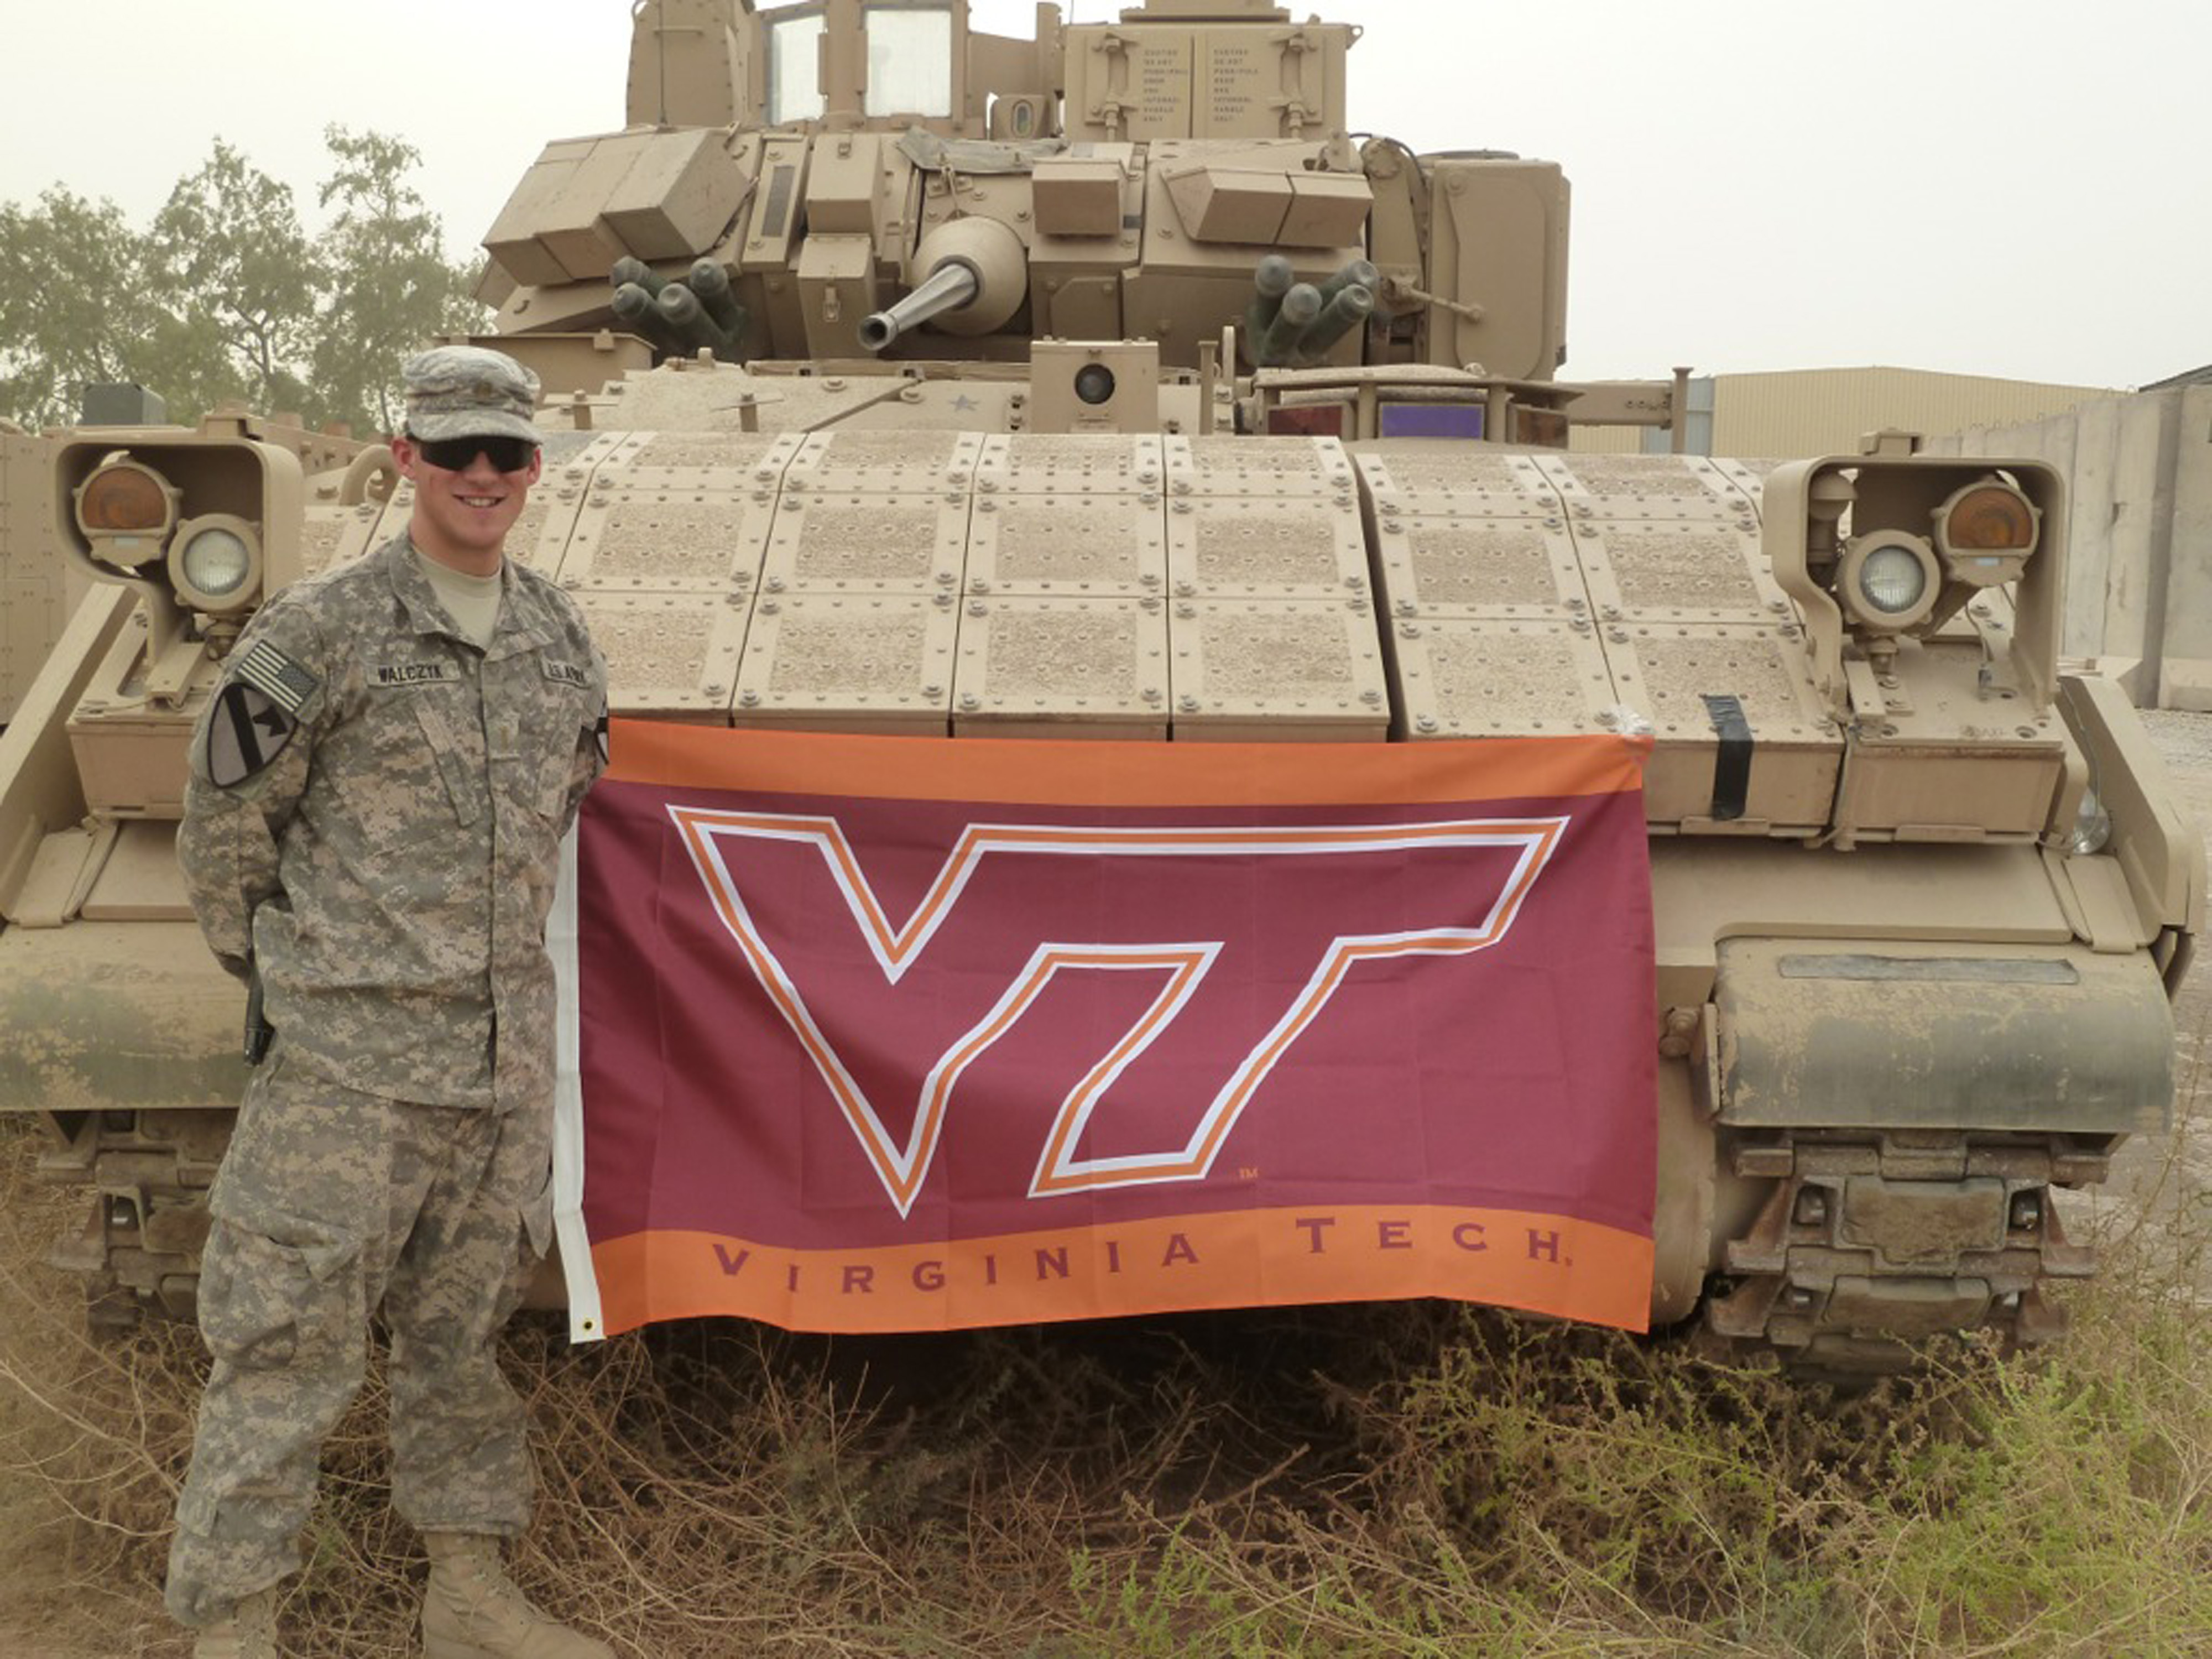 2nd Lt. Mark Walczyk, U.S. Army, Virginia Tech Corps of Cadets Class of 2010, the Hokie Hero for the Appalachian State game